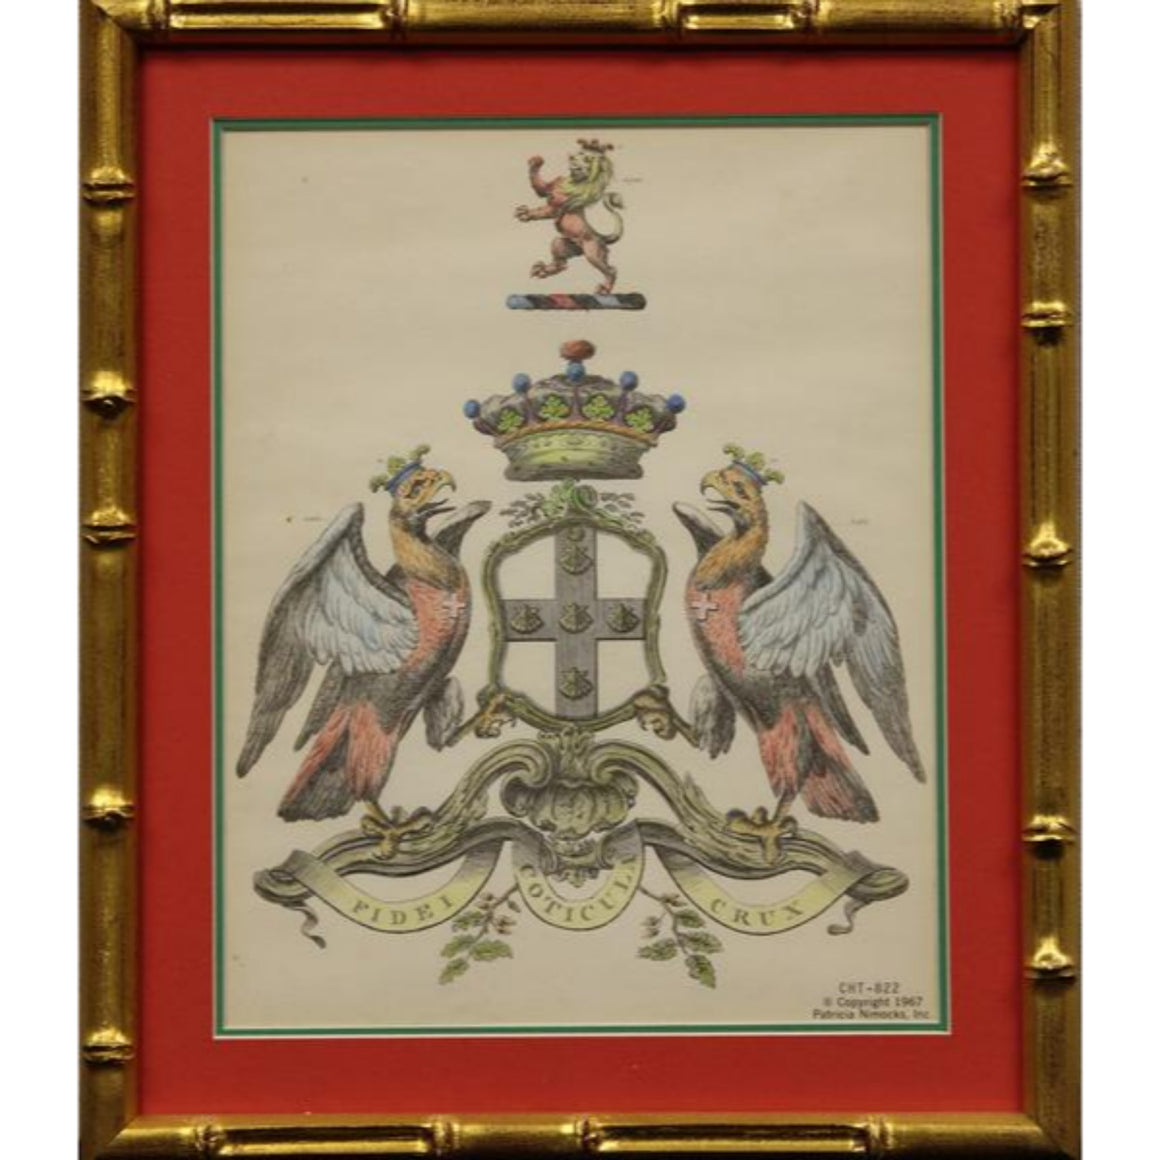 Duke of Buckingham Heraldic Coat-of-Arms